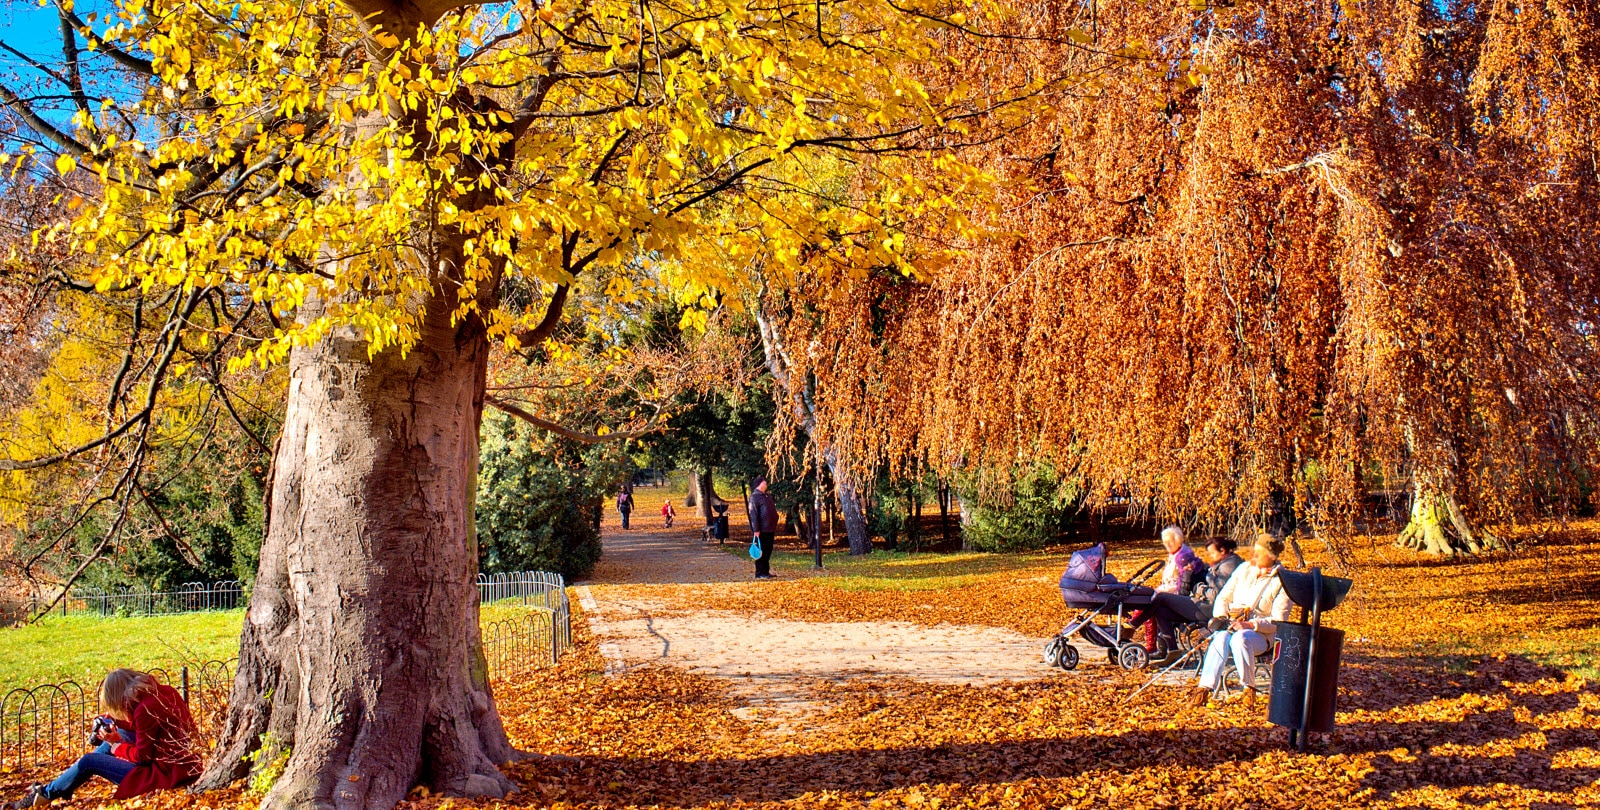 People relaxing in the automnal park